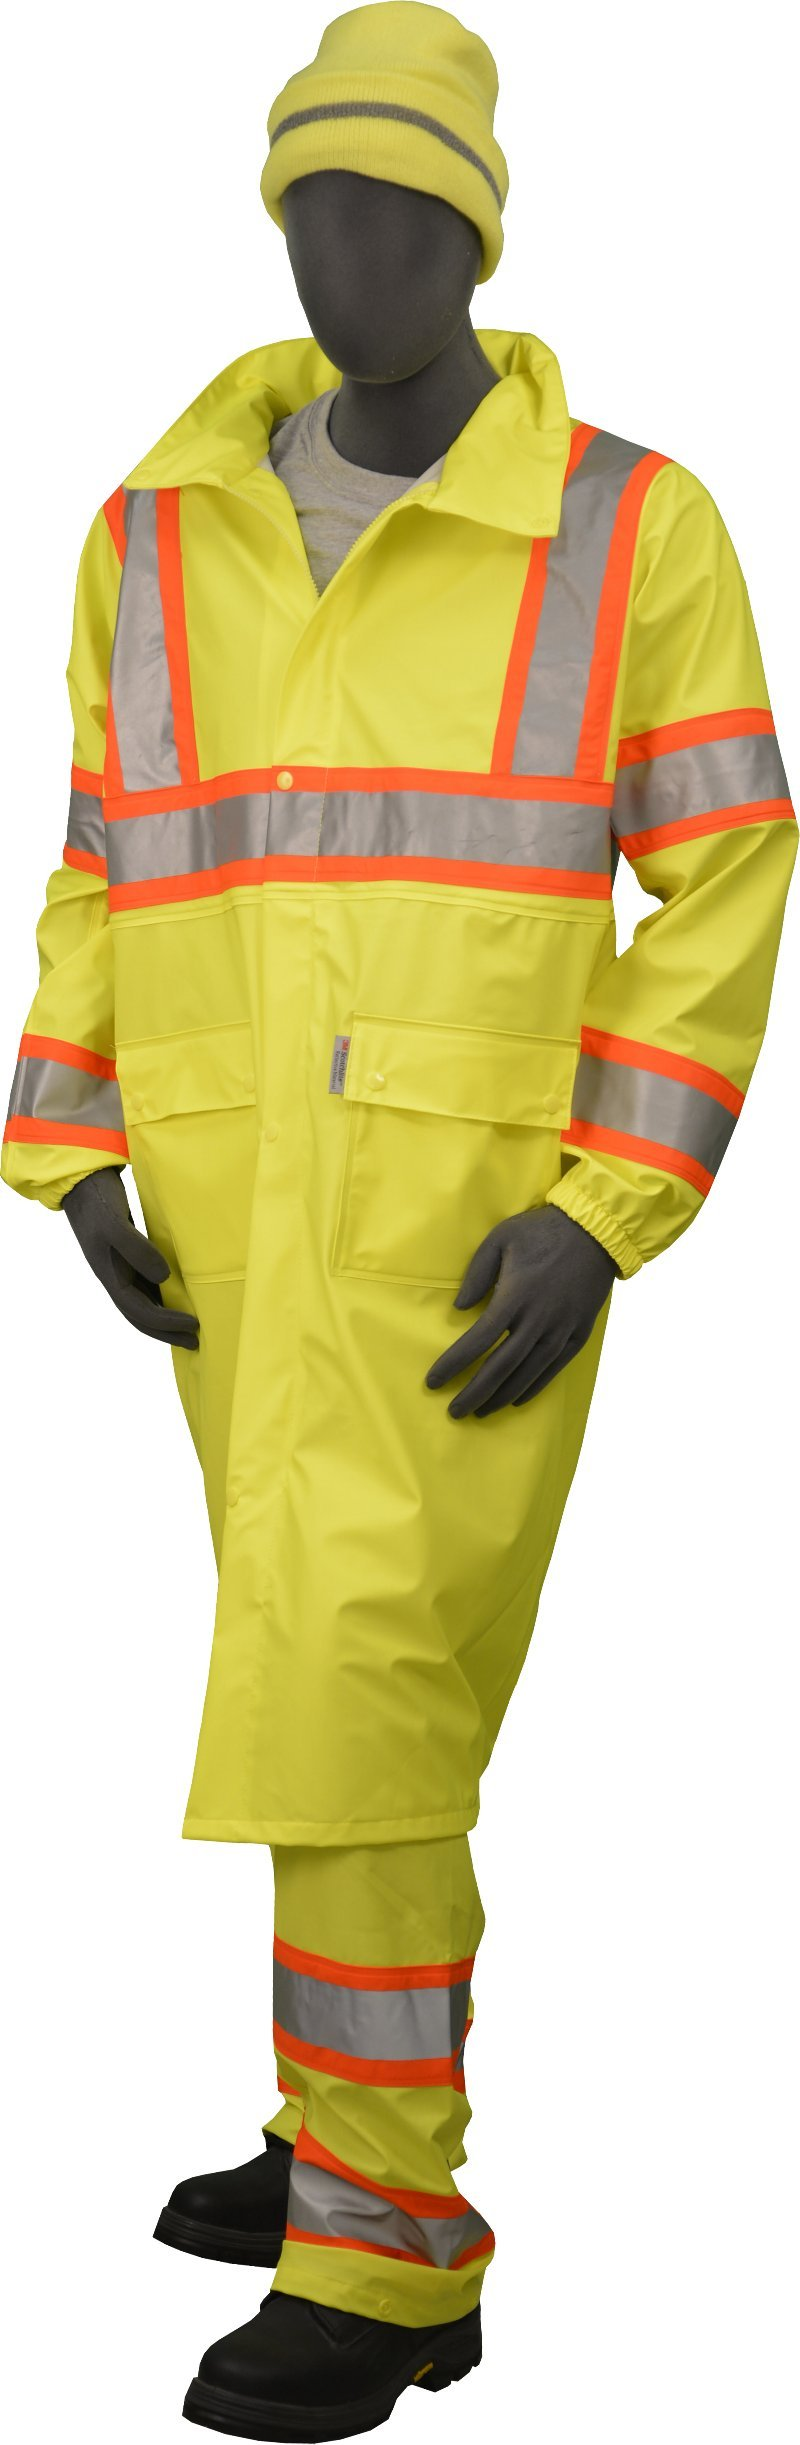 Majestic Glove 75-7303 Polyester High Visibility DOT Rain Coat with Concealed Hood, 48'' Length, X-Large, Yellow